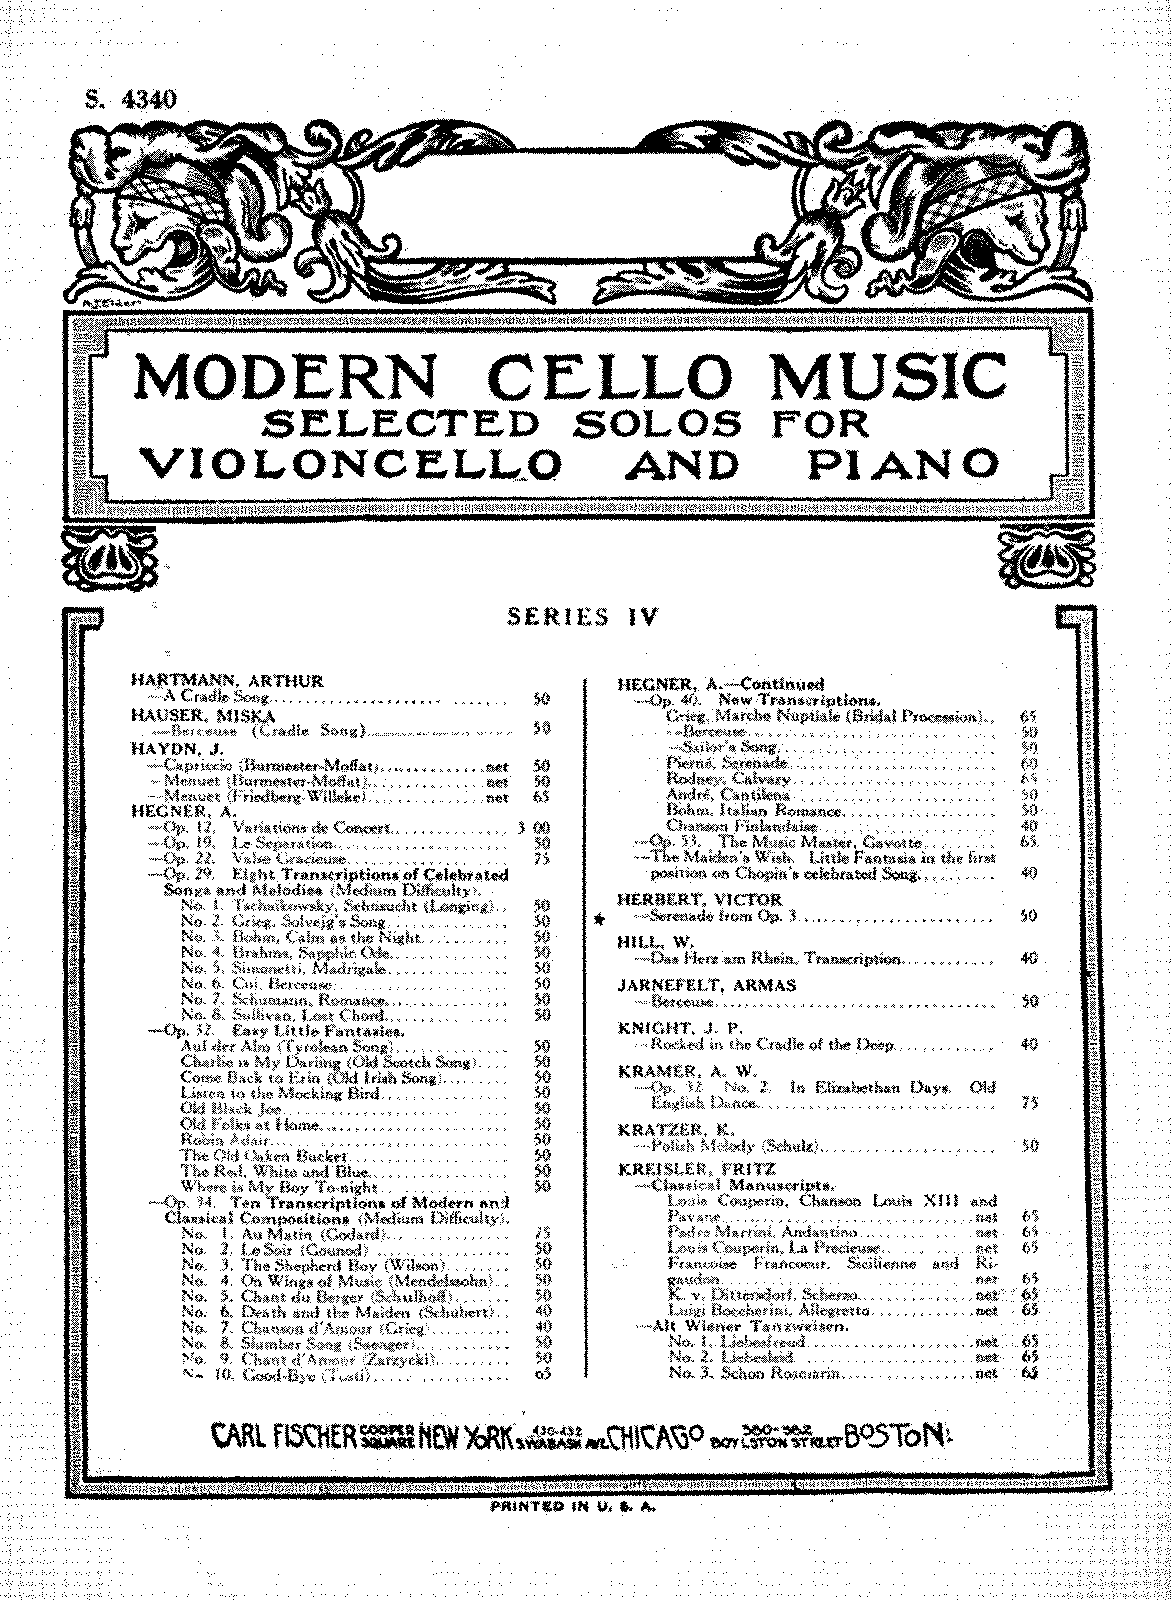 PMLP48398-Herbert - Serenade from Op3 for cello and piano.pdf